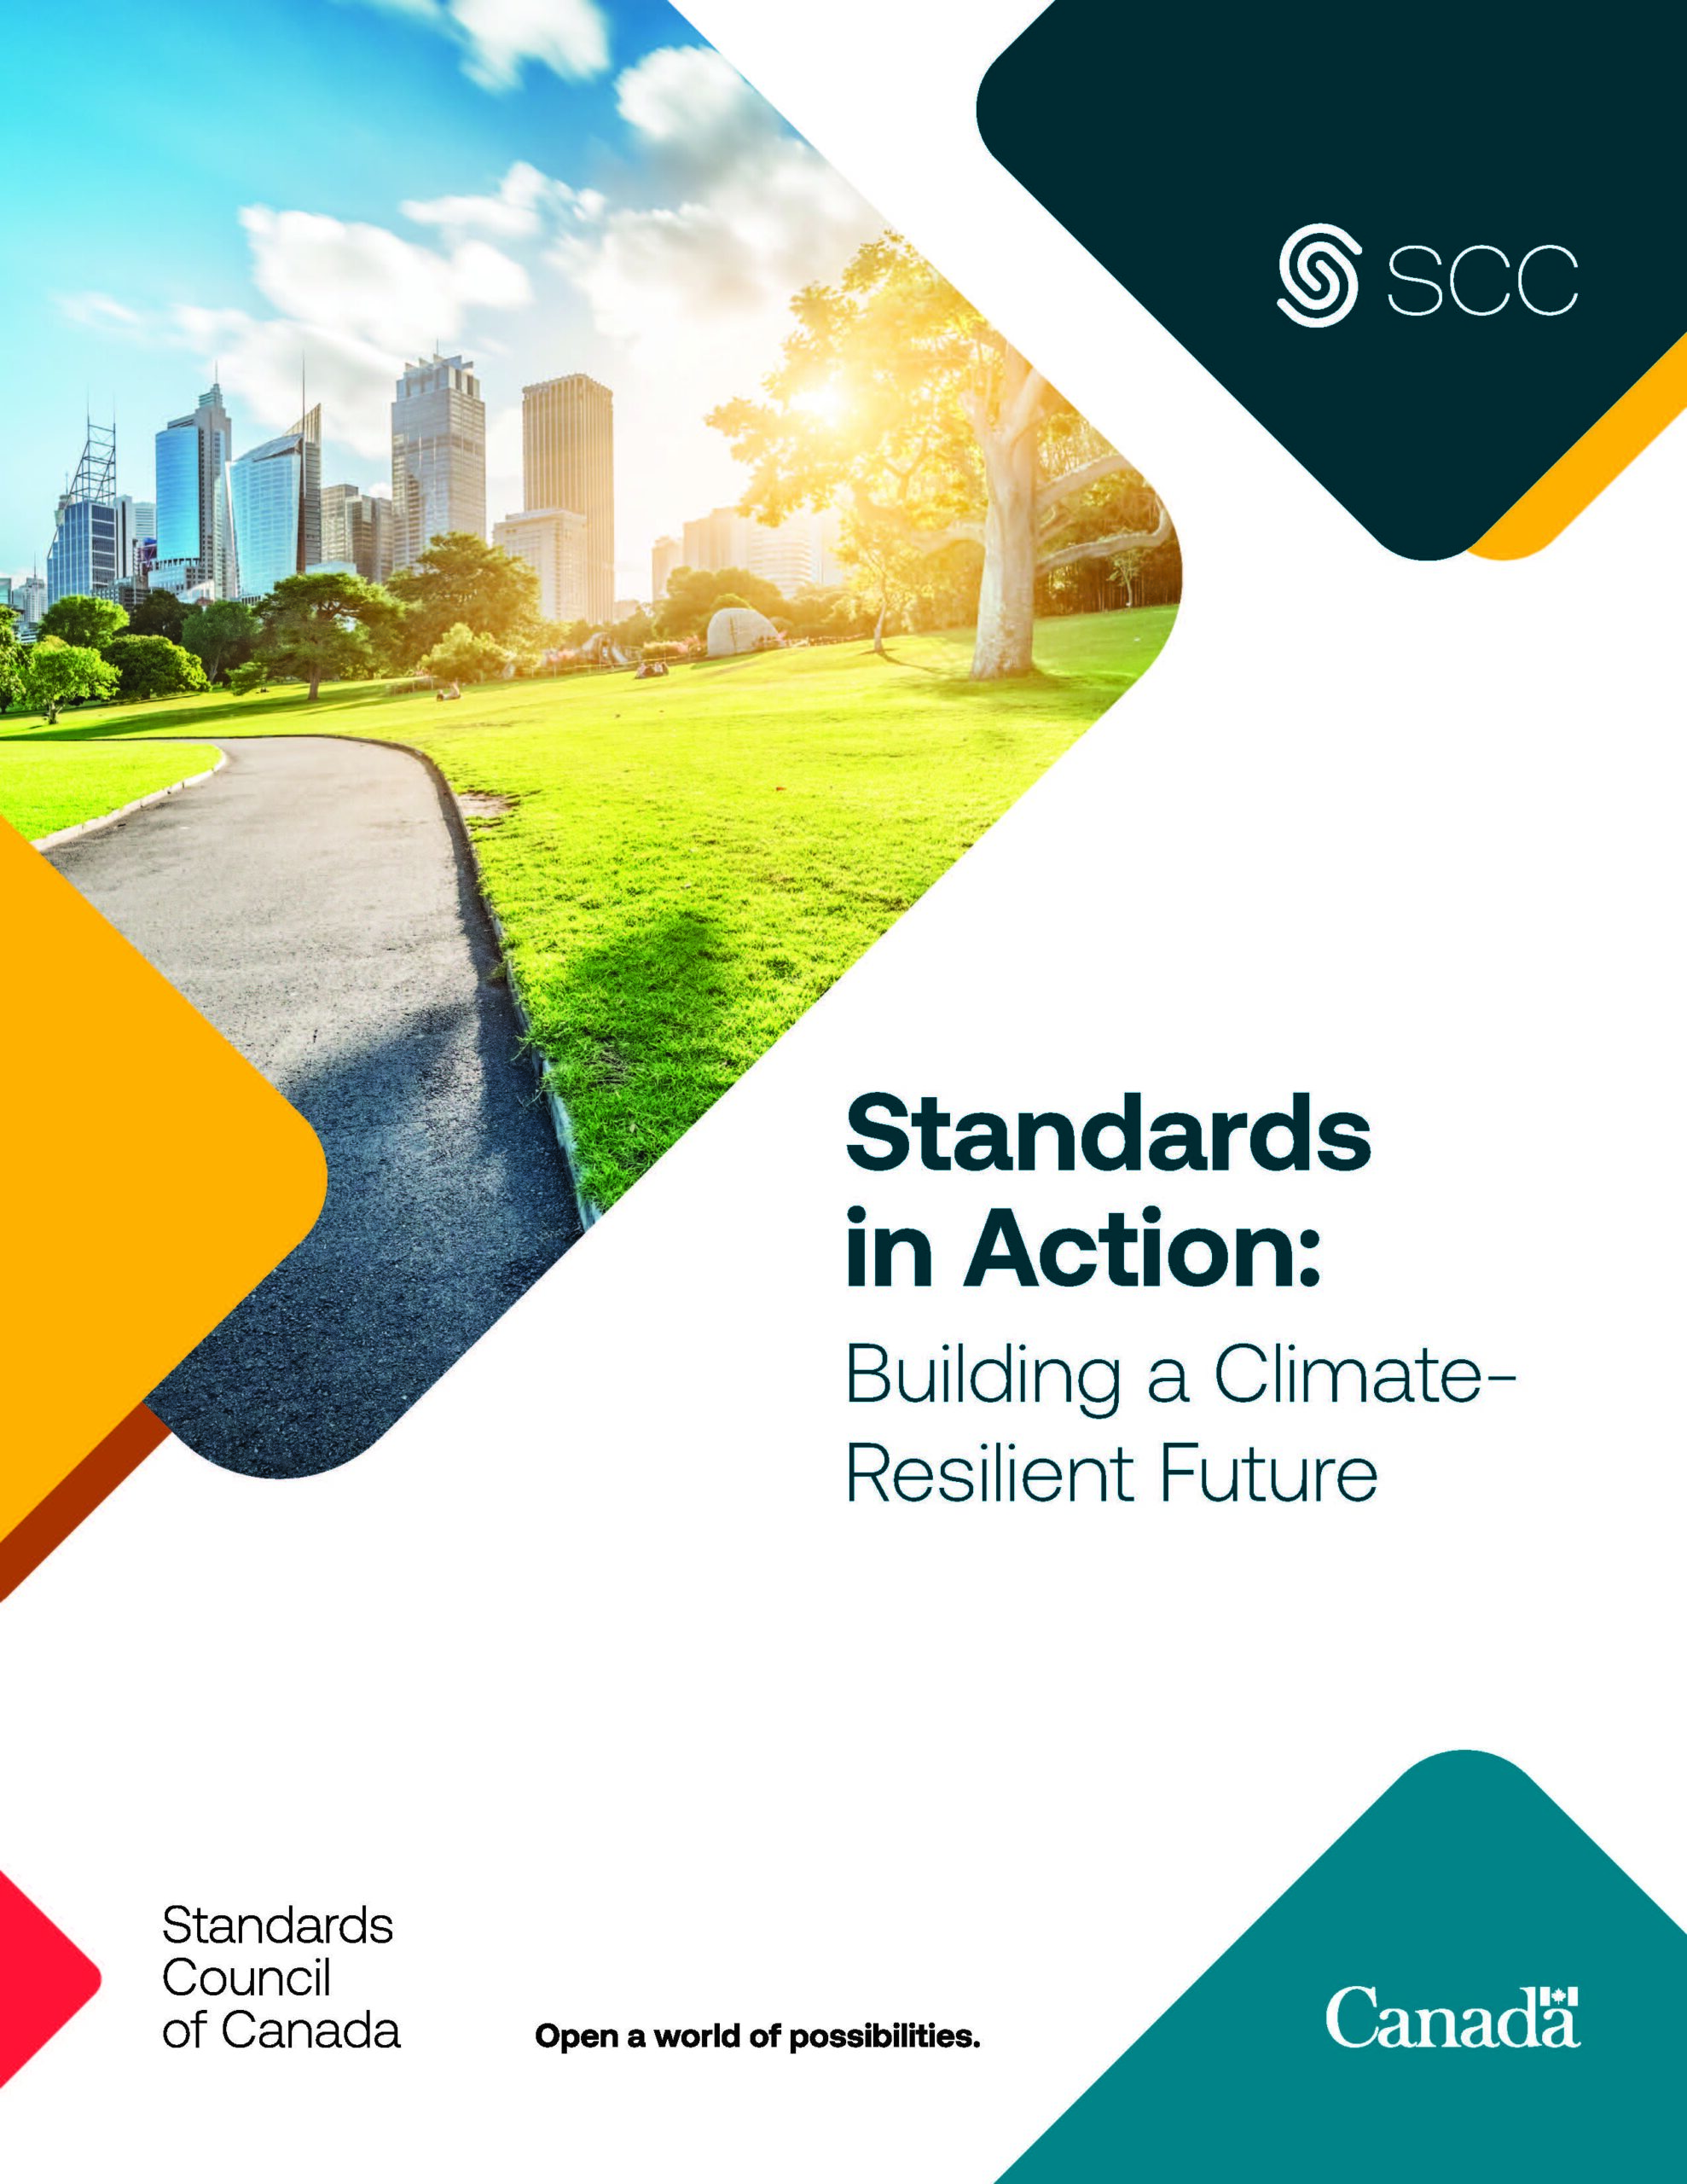 Standards in Action: Building a Climate Resilient Future